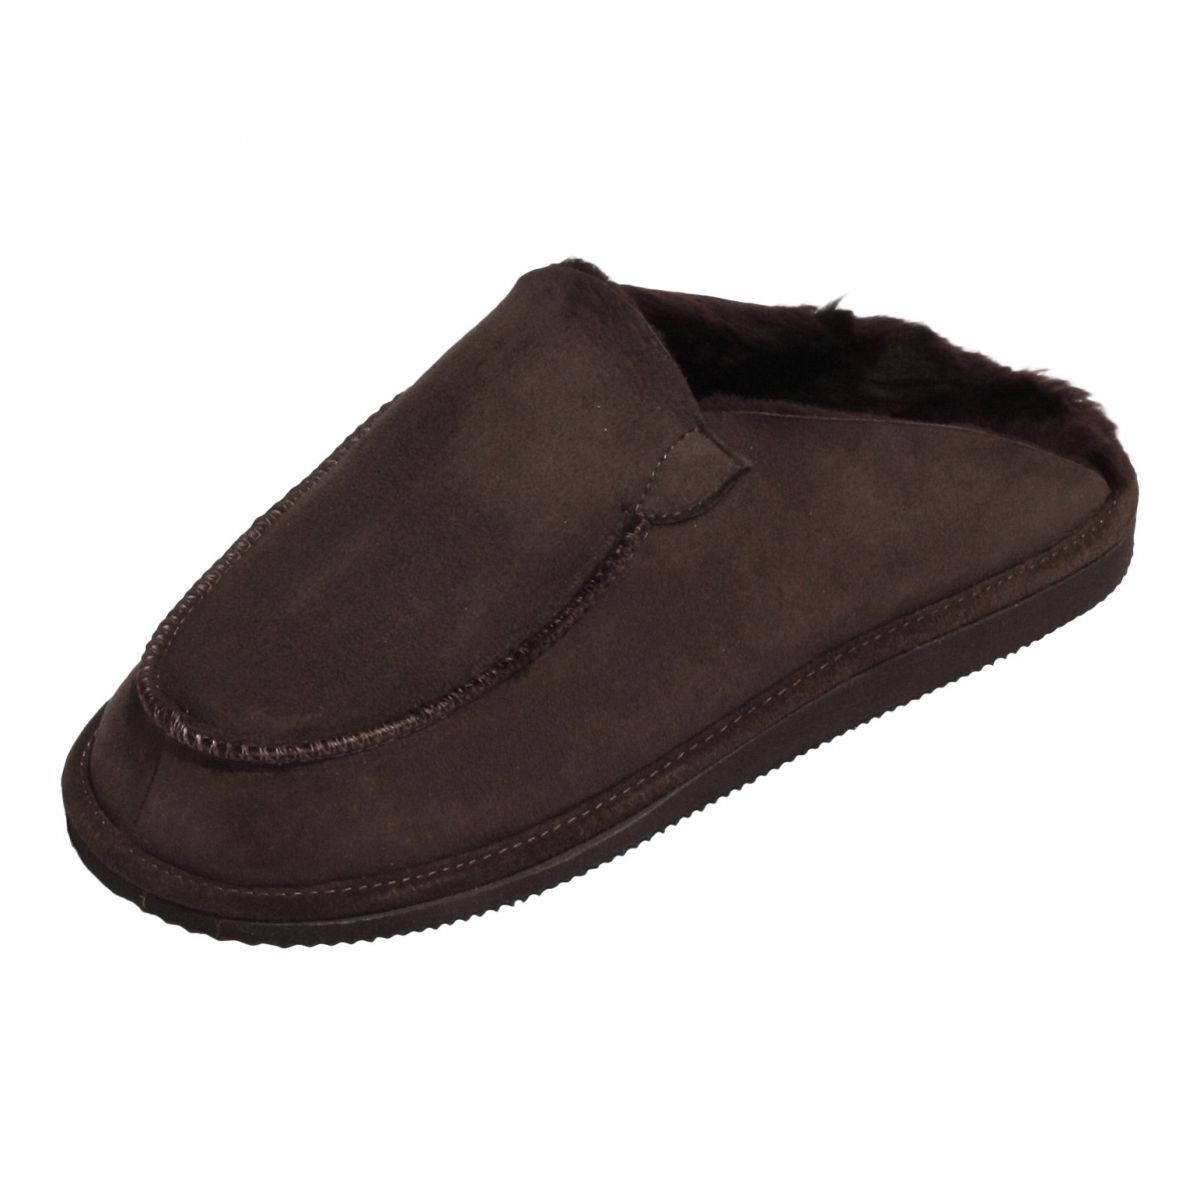 Lamb Wool House Shoes - Peter Men's Slippers Leather Shoes fur Shoes